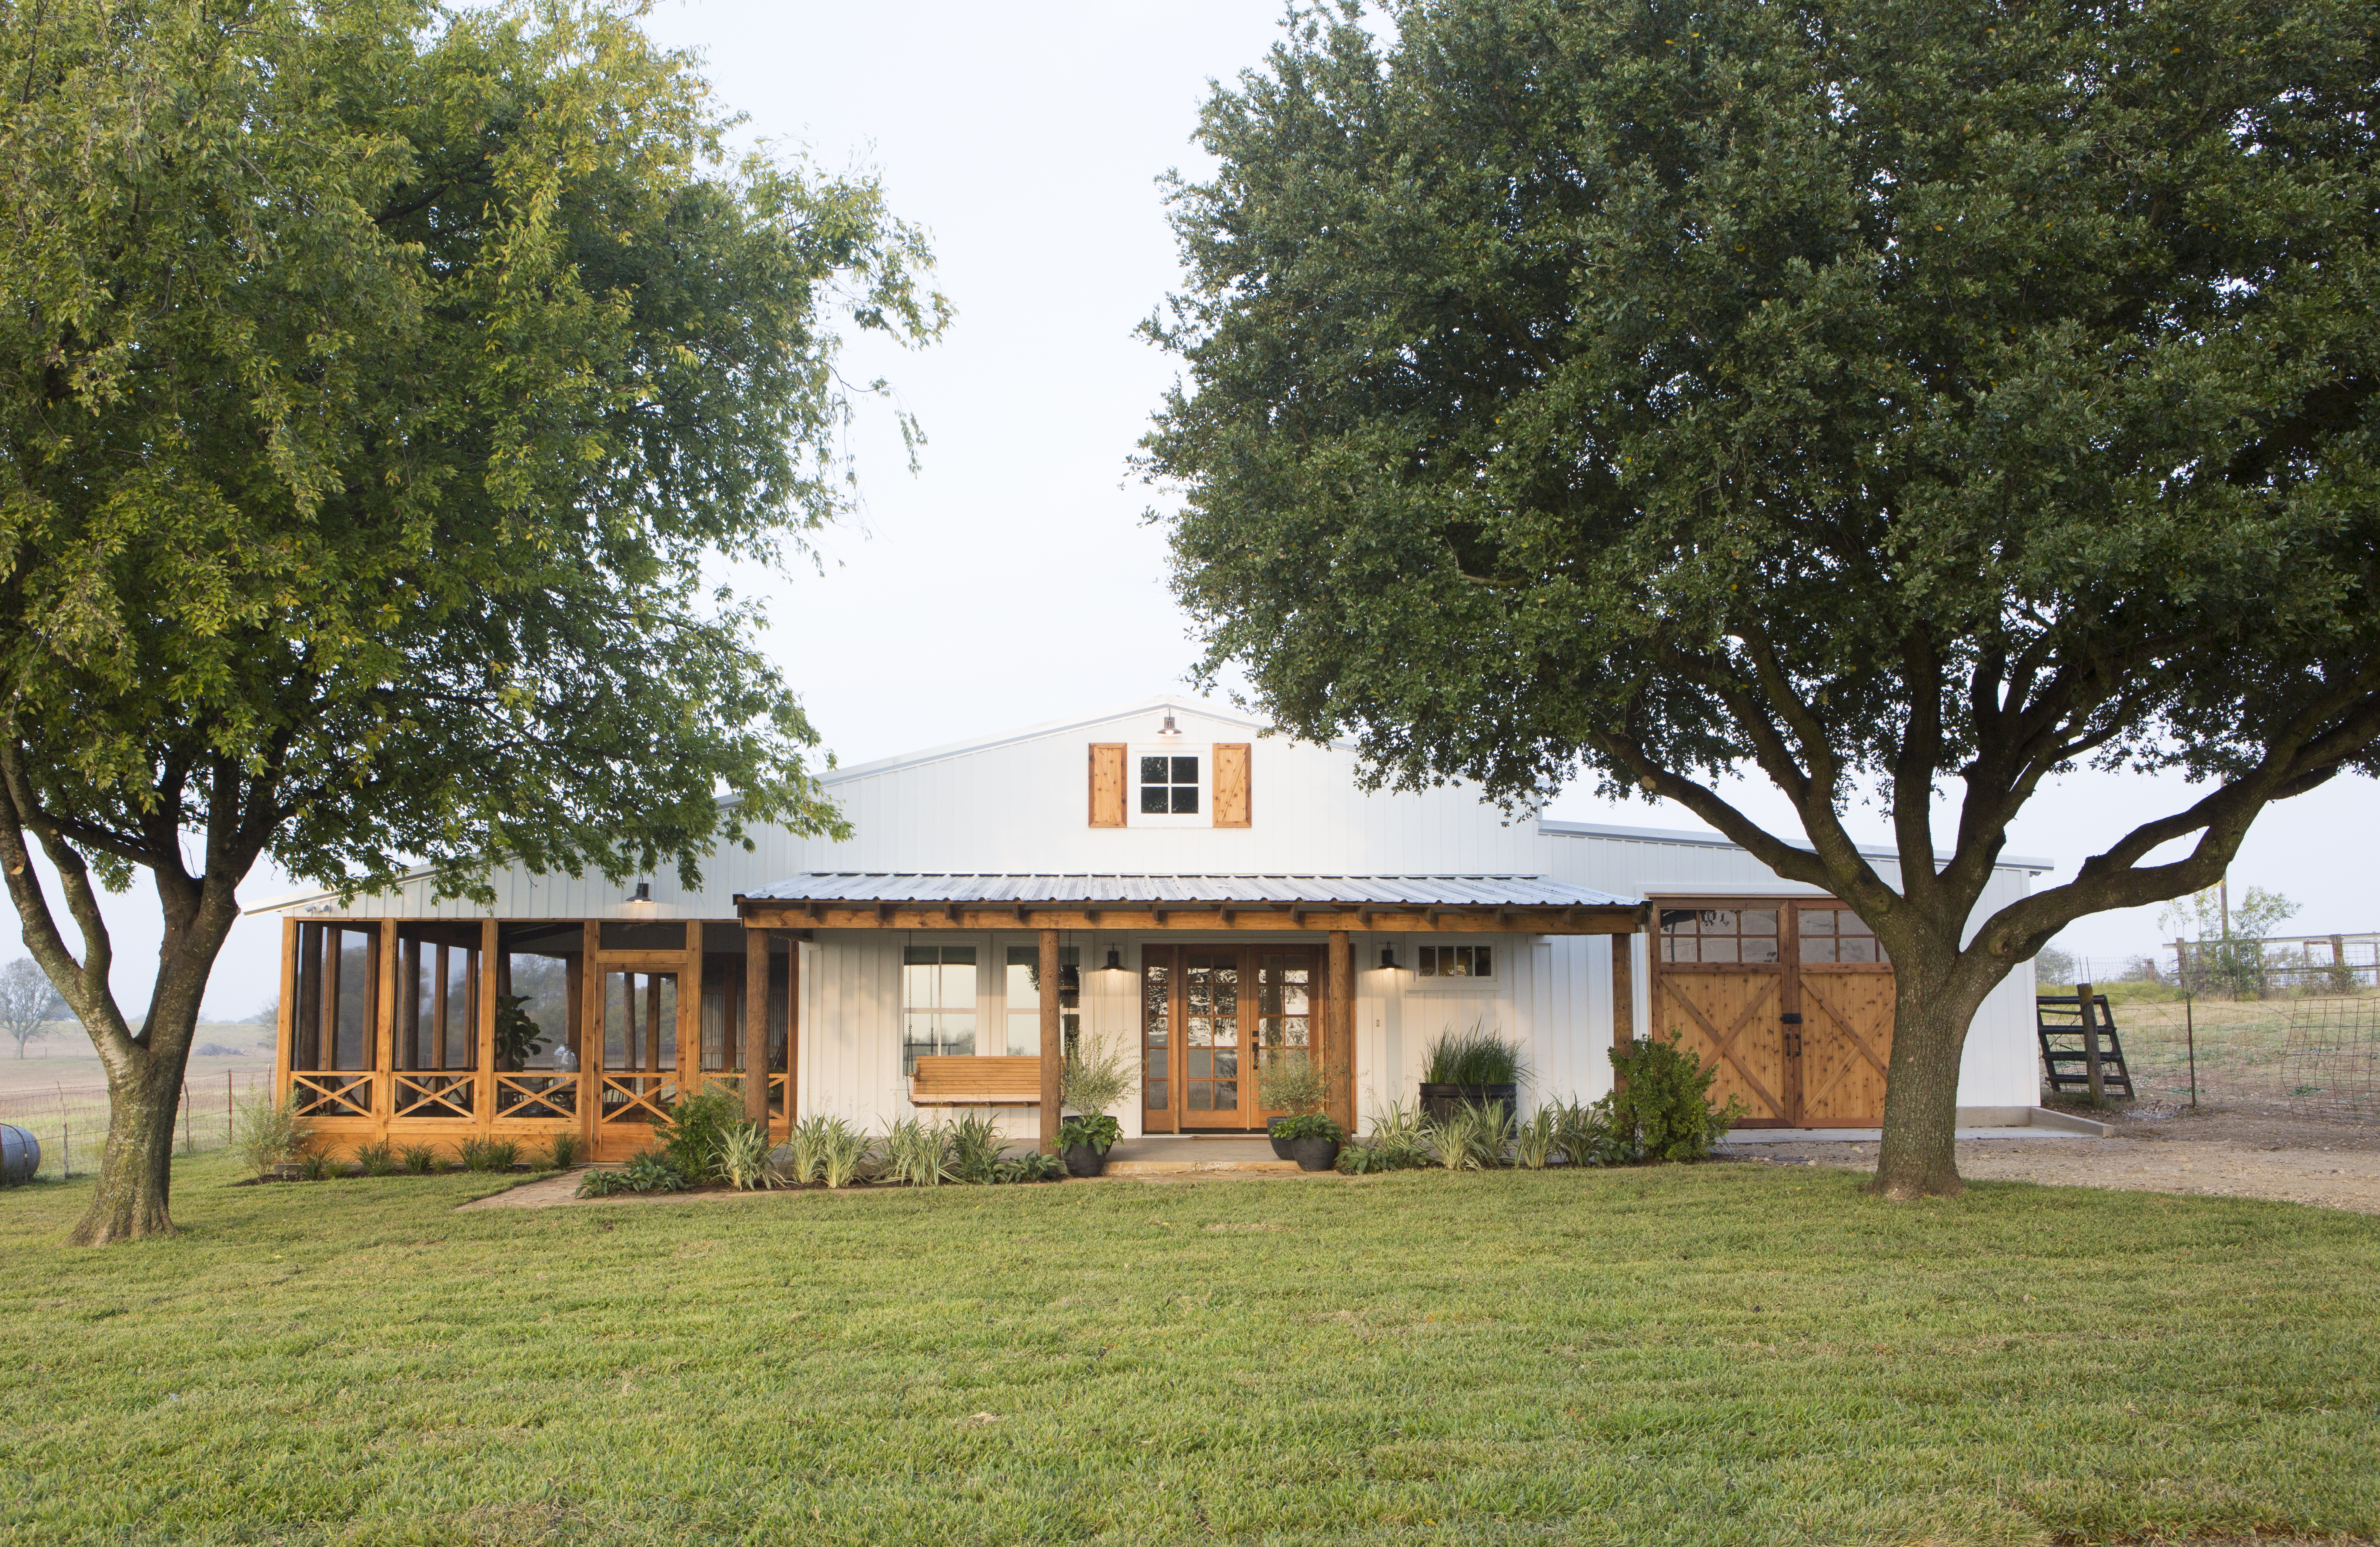 Chip and Joanna Gaines Fixer Upper House